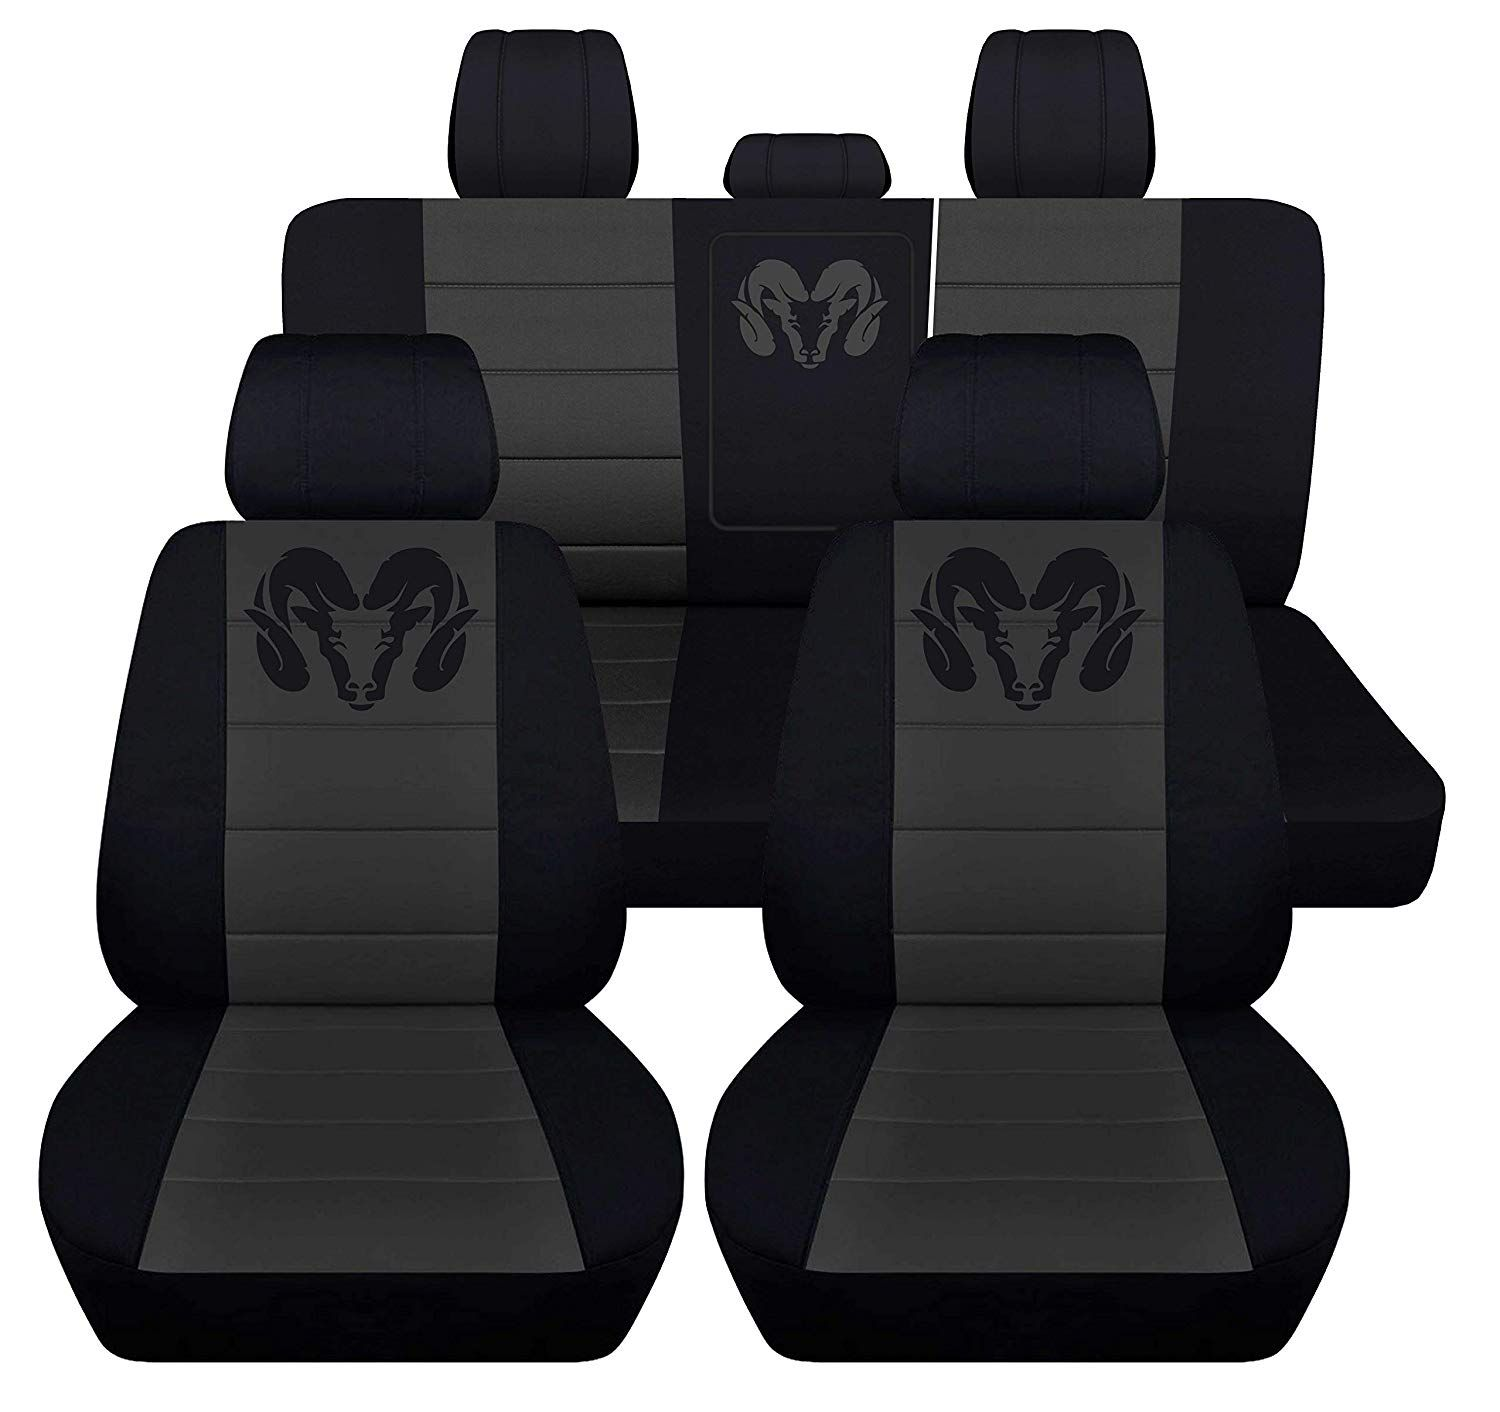 Dodge Ram 1500 Seats Covers Top Rated Seat Covers For Dodge Ram 1500 Buying Guide Dodge Ram 1500 Dodge Ram 1500 Accessories Dodge Accessories